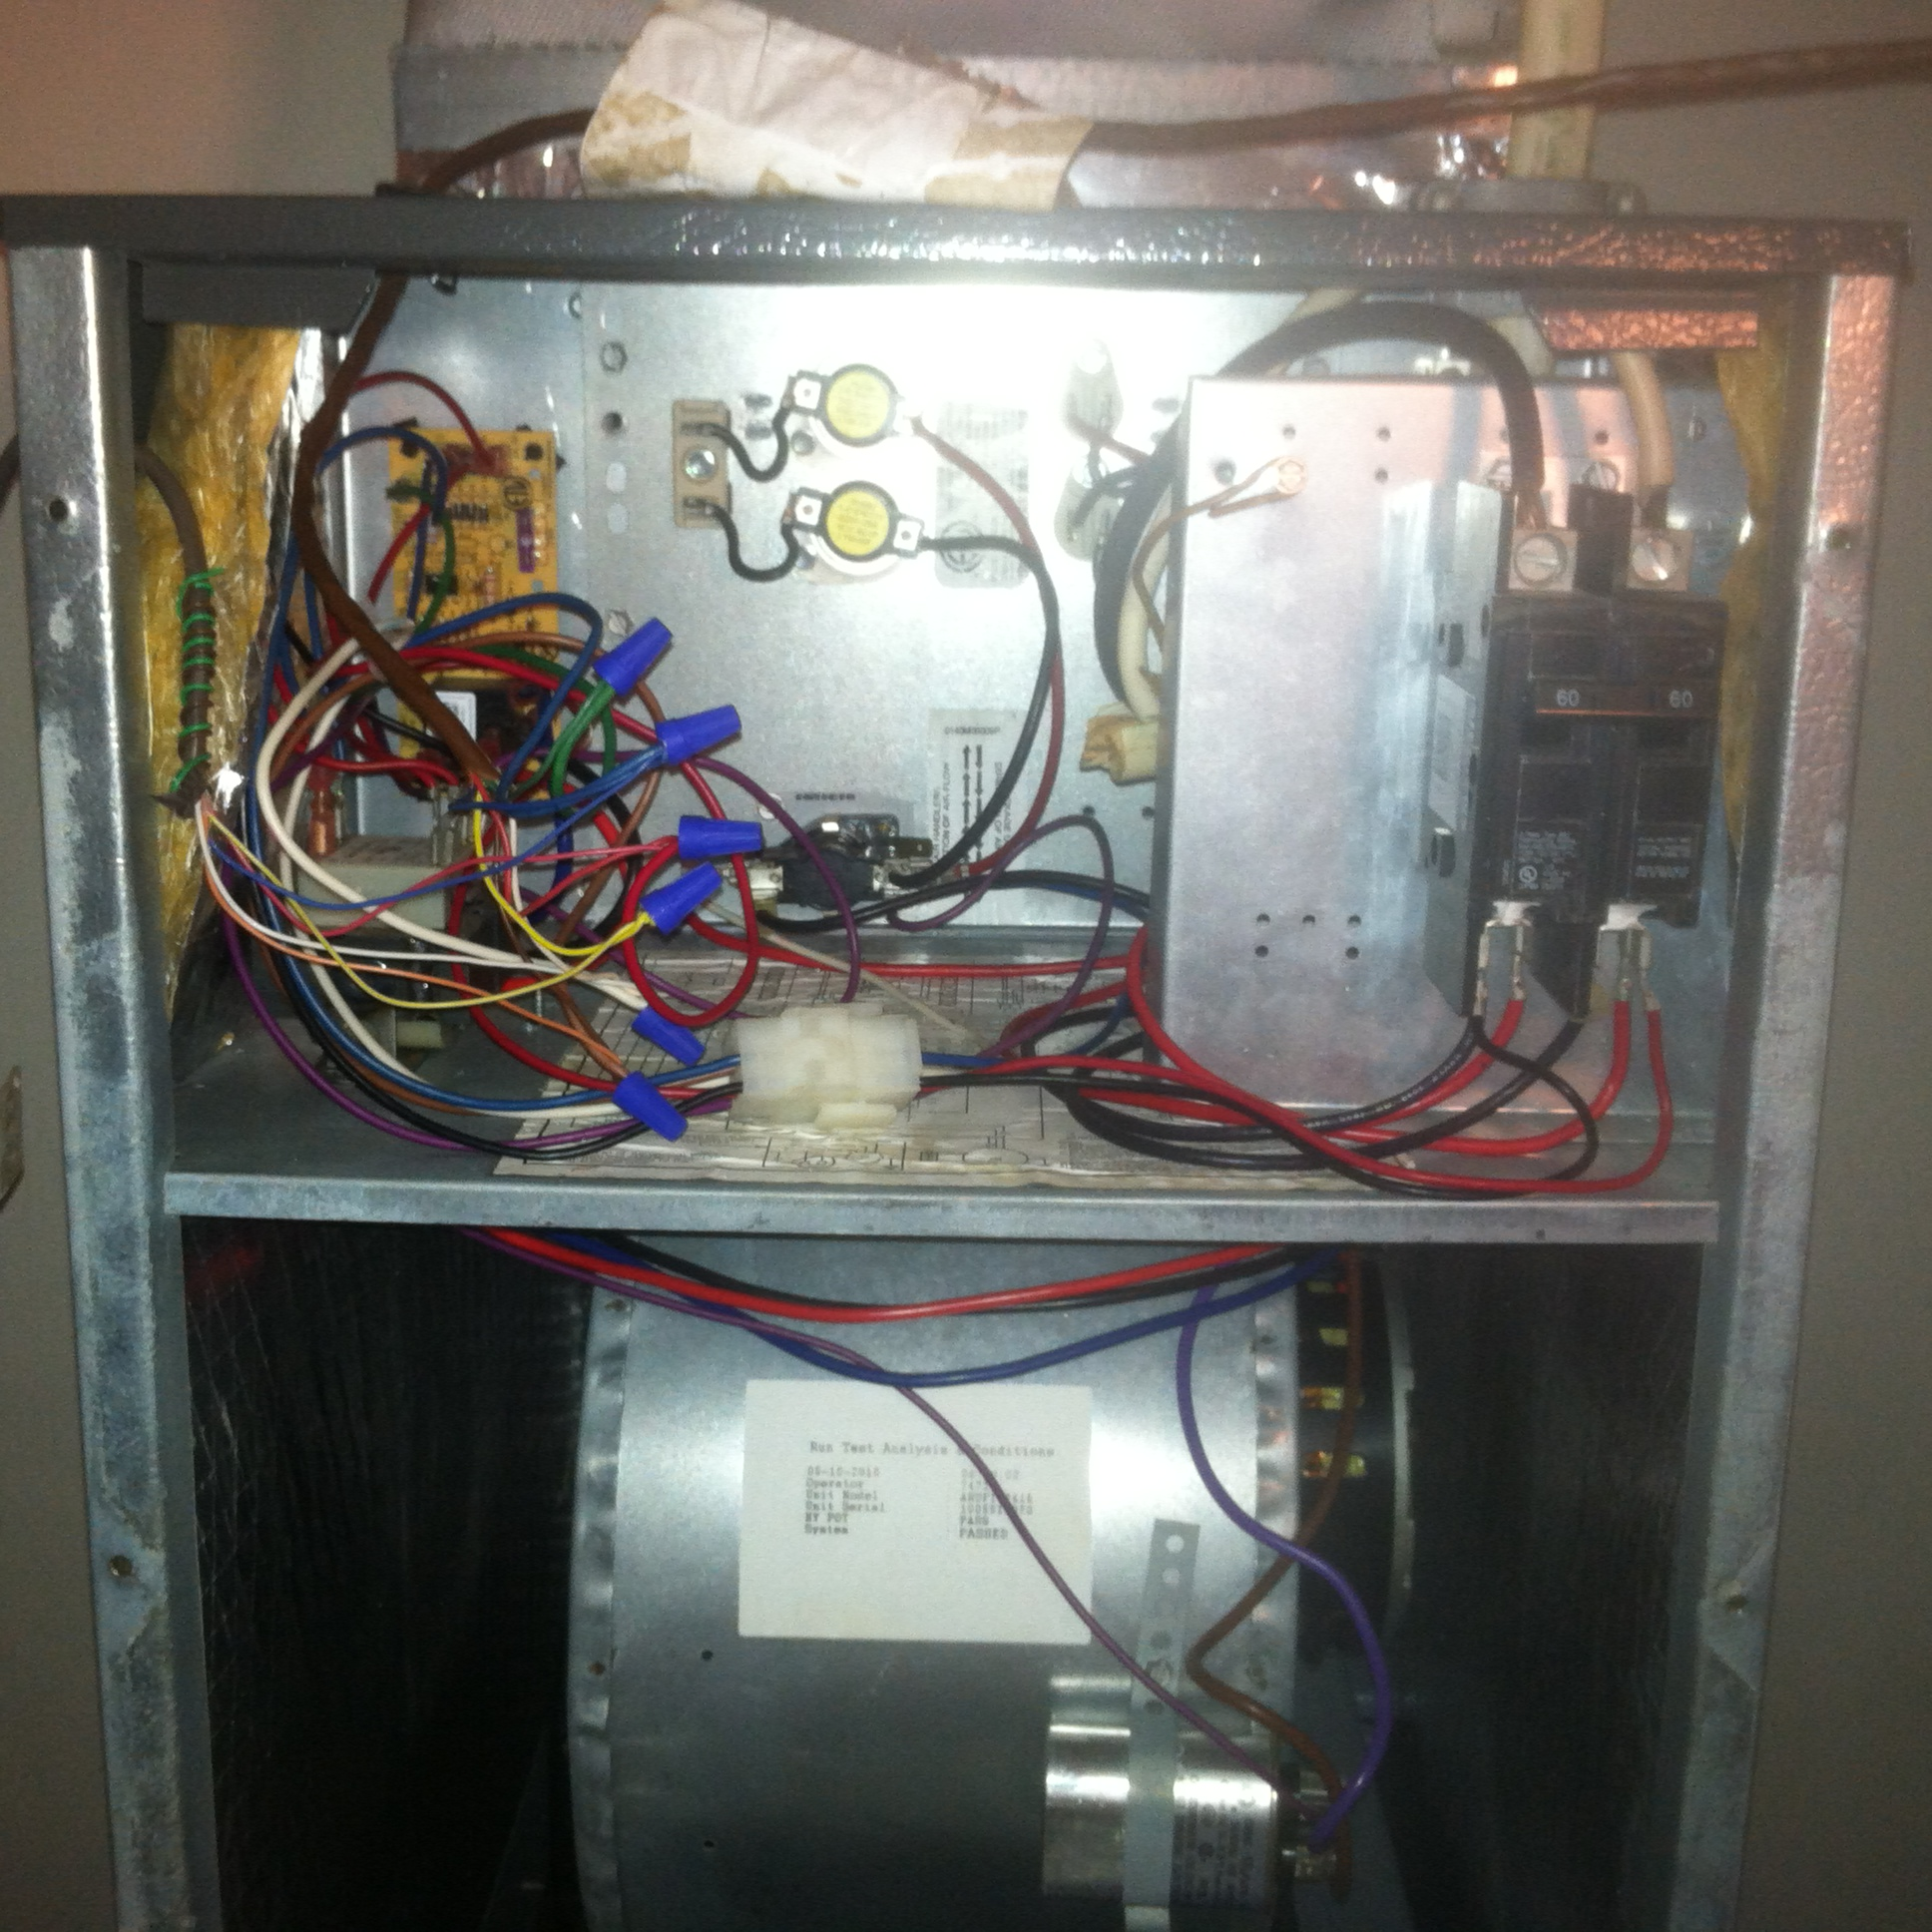 hight resolution of goodman electric furnace single element wiring diagram electric furnace sequencer wiring diagram hello im a new homeowner and new to